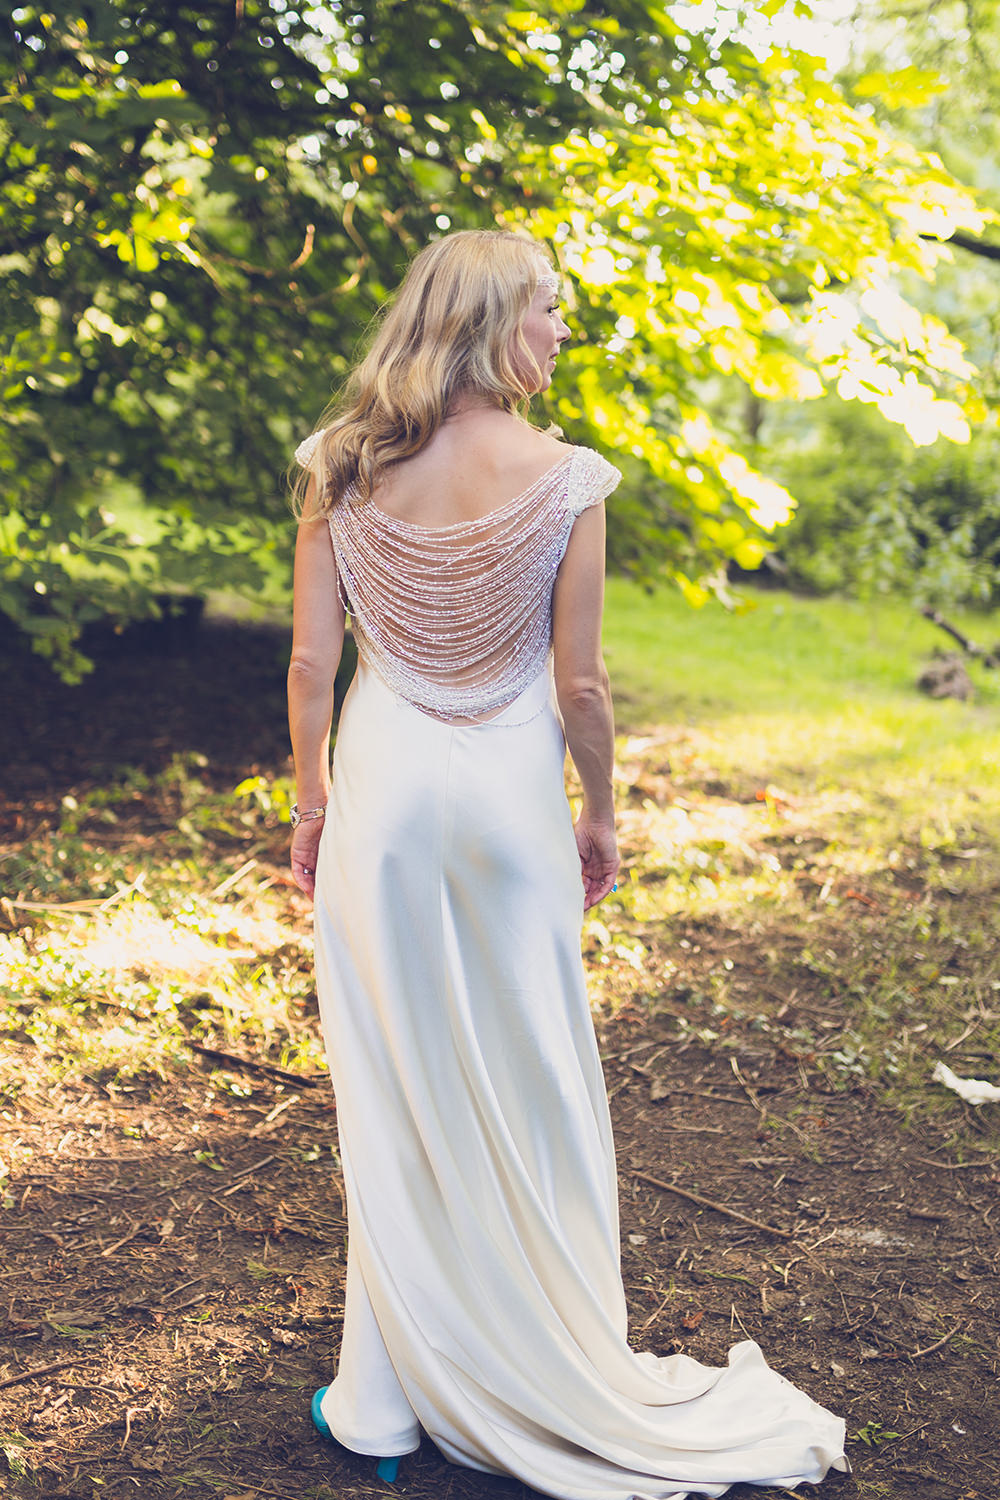 Suzanne Neville Silk Dress Gown Bride Bridal Train Beaded Back Detail Embellished Hothorpe Hall Woodlands Wedding Lucy Long Photography